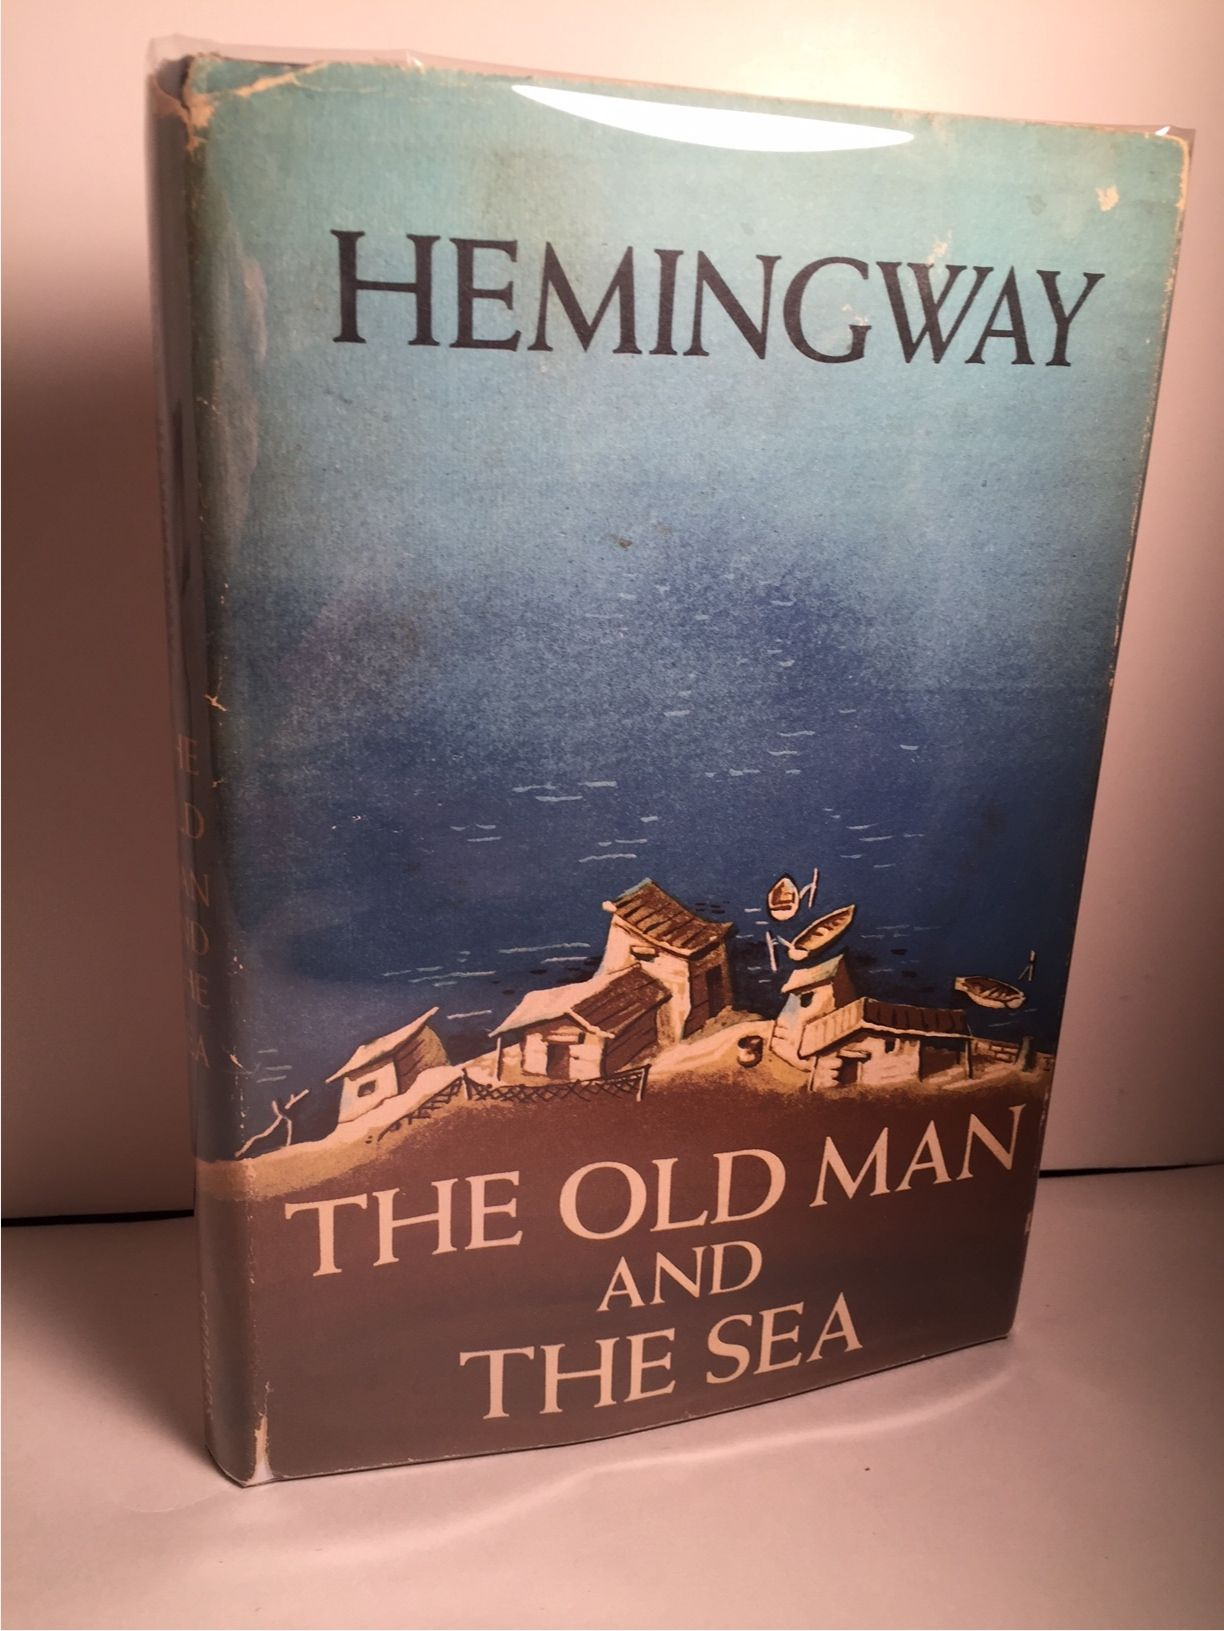 hemingway s old man and sea The old man and the sea is one of hemingway's most enduring works told in language of great simplicity and power, it is the story of an old cuban fisherman, down on his luck, and his supreme ordeal — a relentless, agonizing battle with a giant marlin far out in the gulf stream.